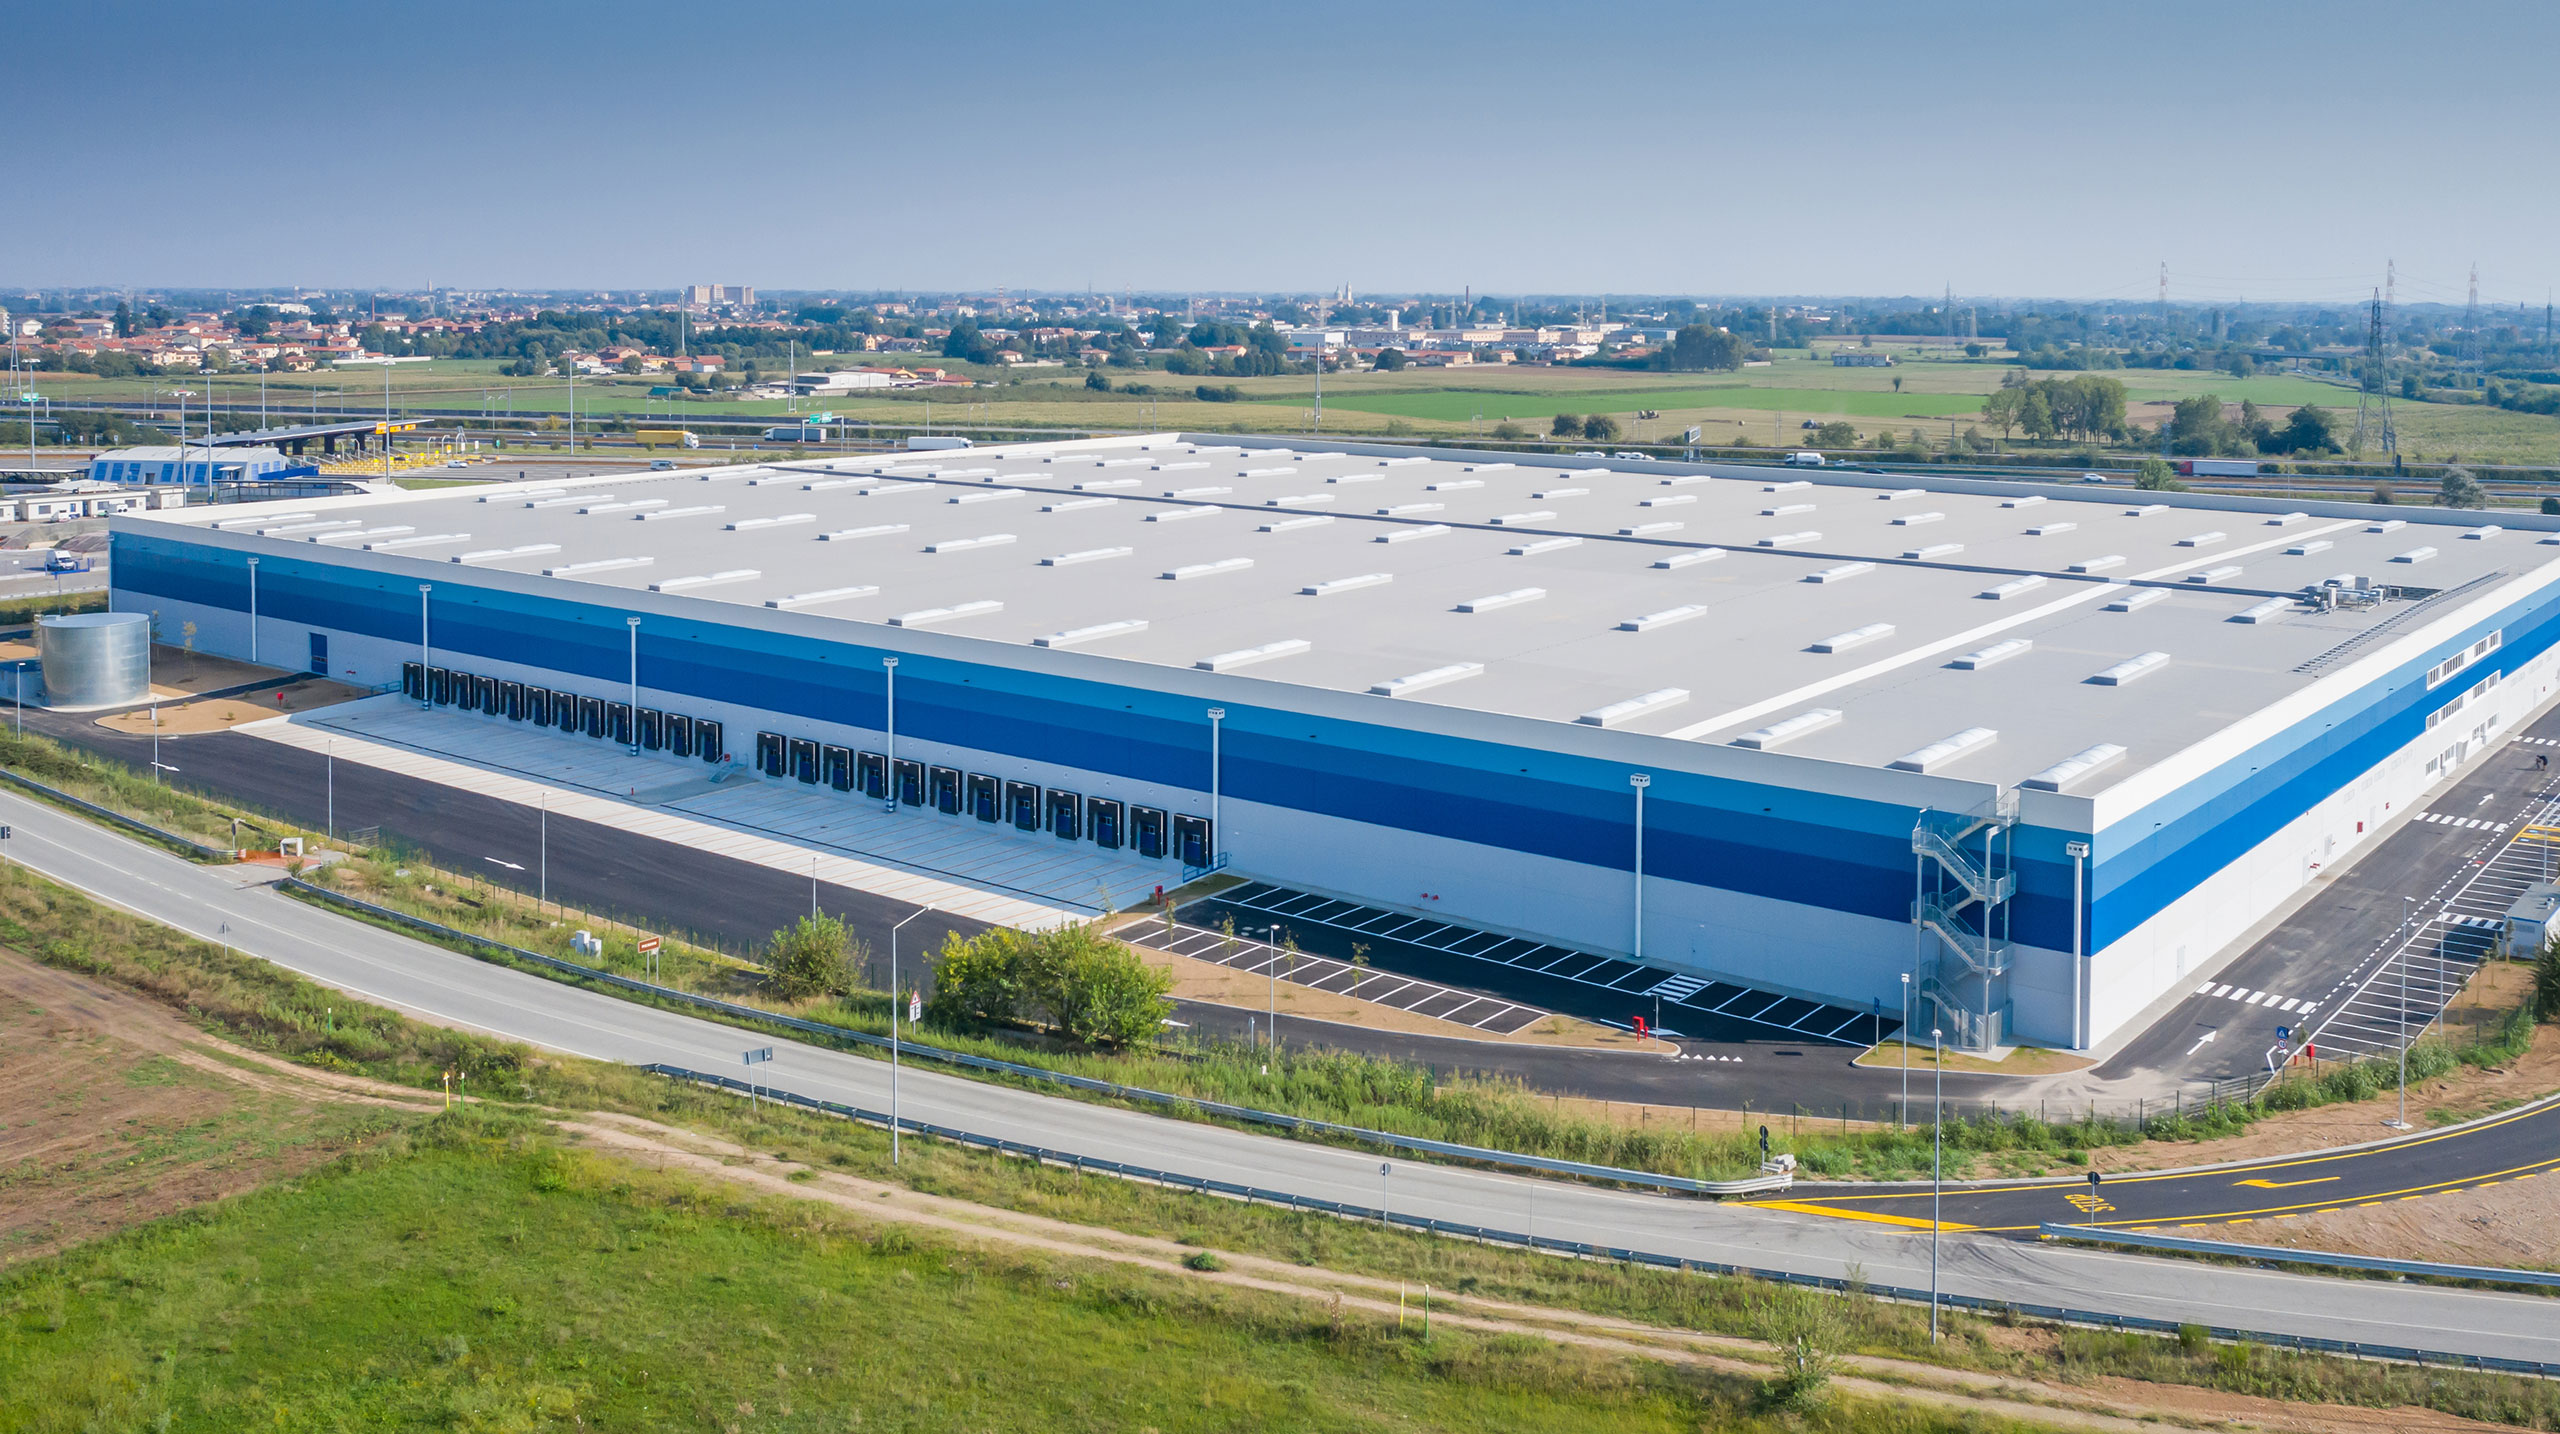 GSE ITALIA DELIVERS A NEW 48,000 M2 LOGISTICS PLATFORM NEAR MILAN FOR CARLYLE REAL ESTATE